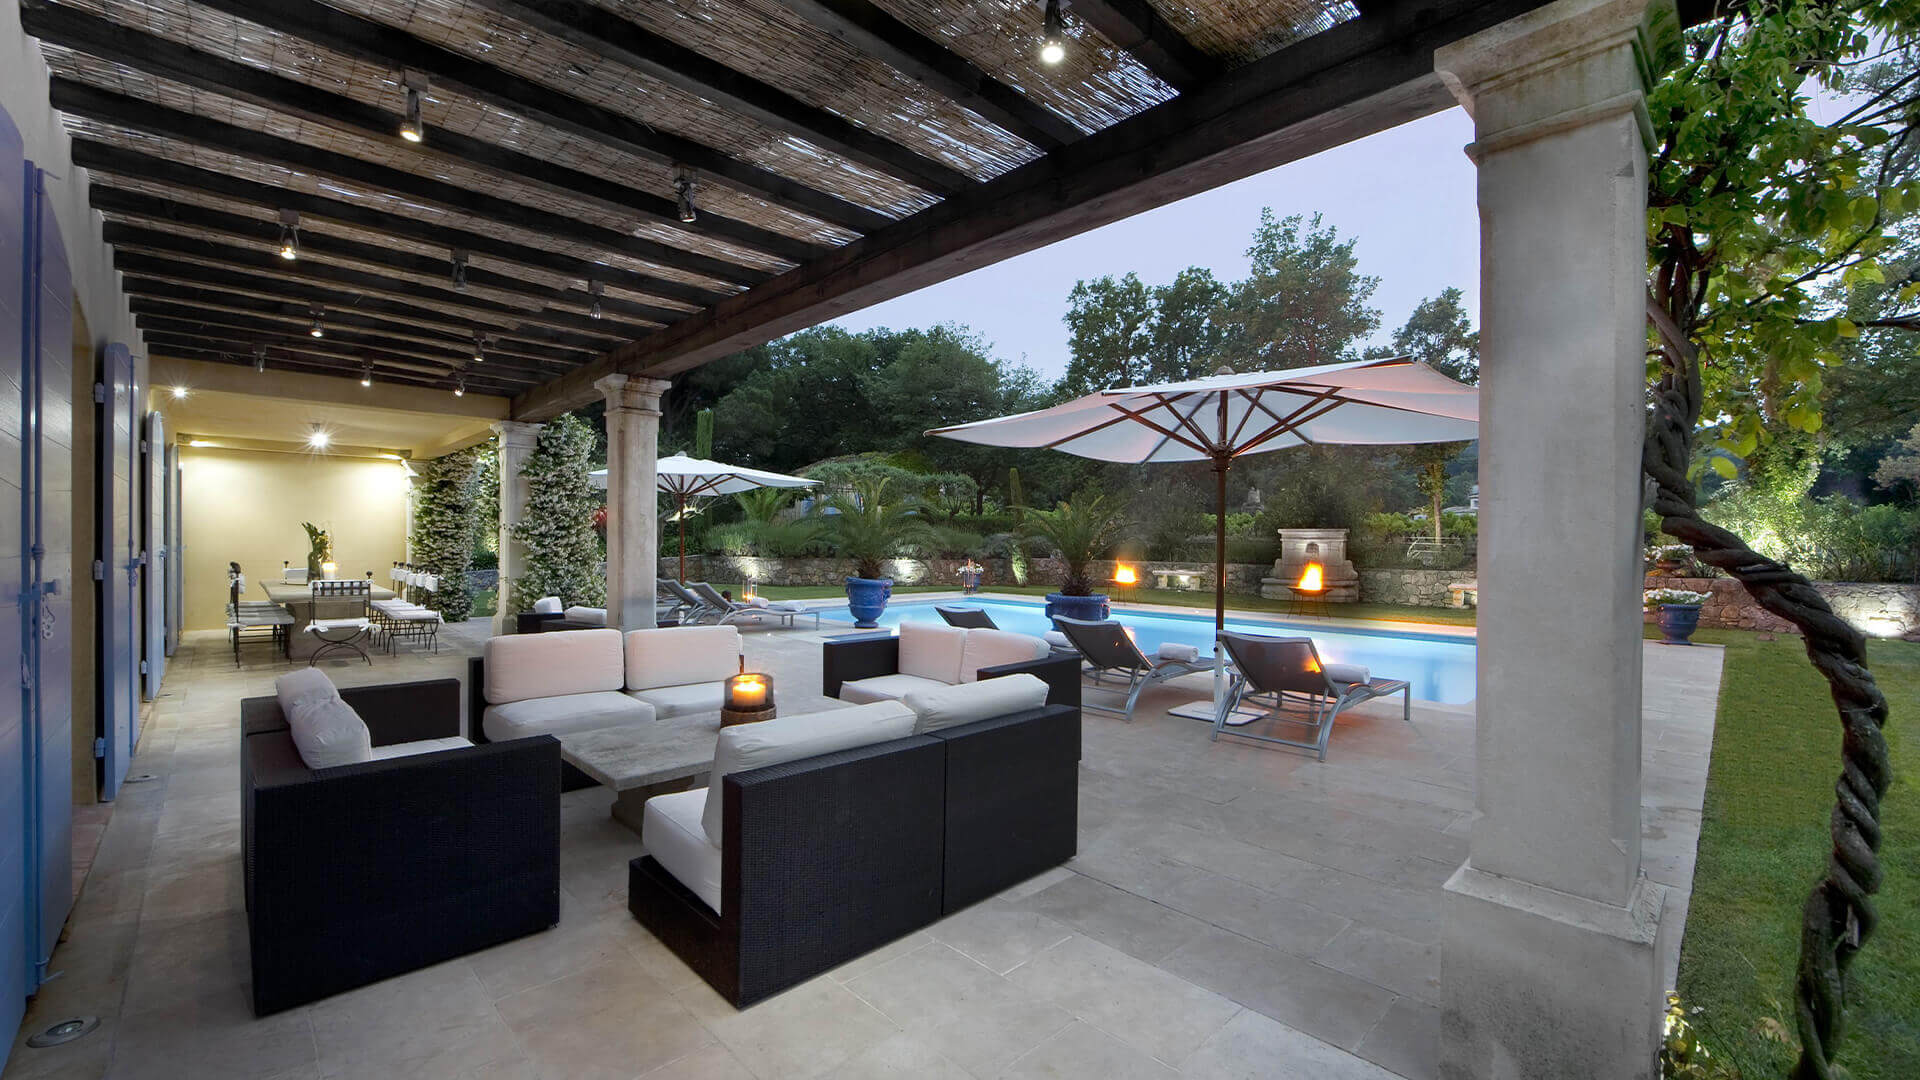 Saint Tropez Villa outdoor sitting area by the swimming pool